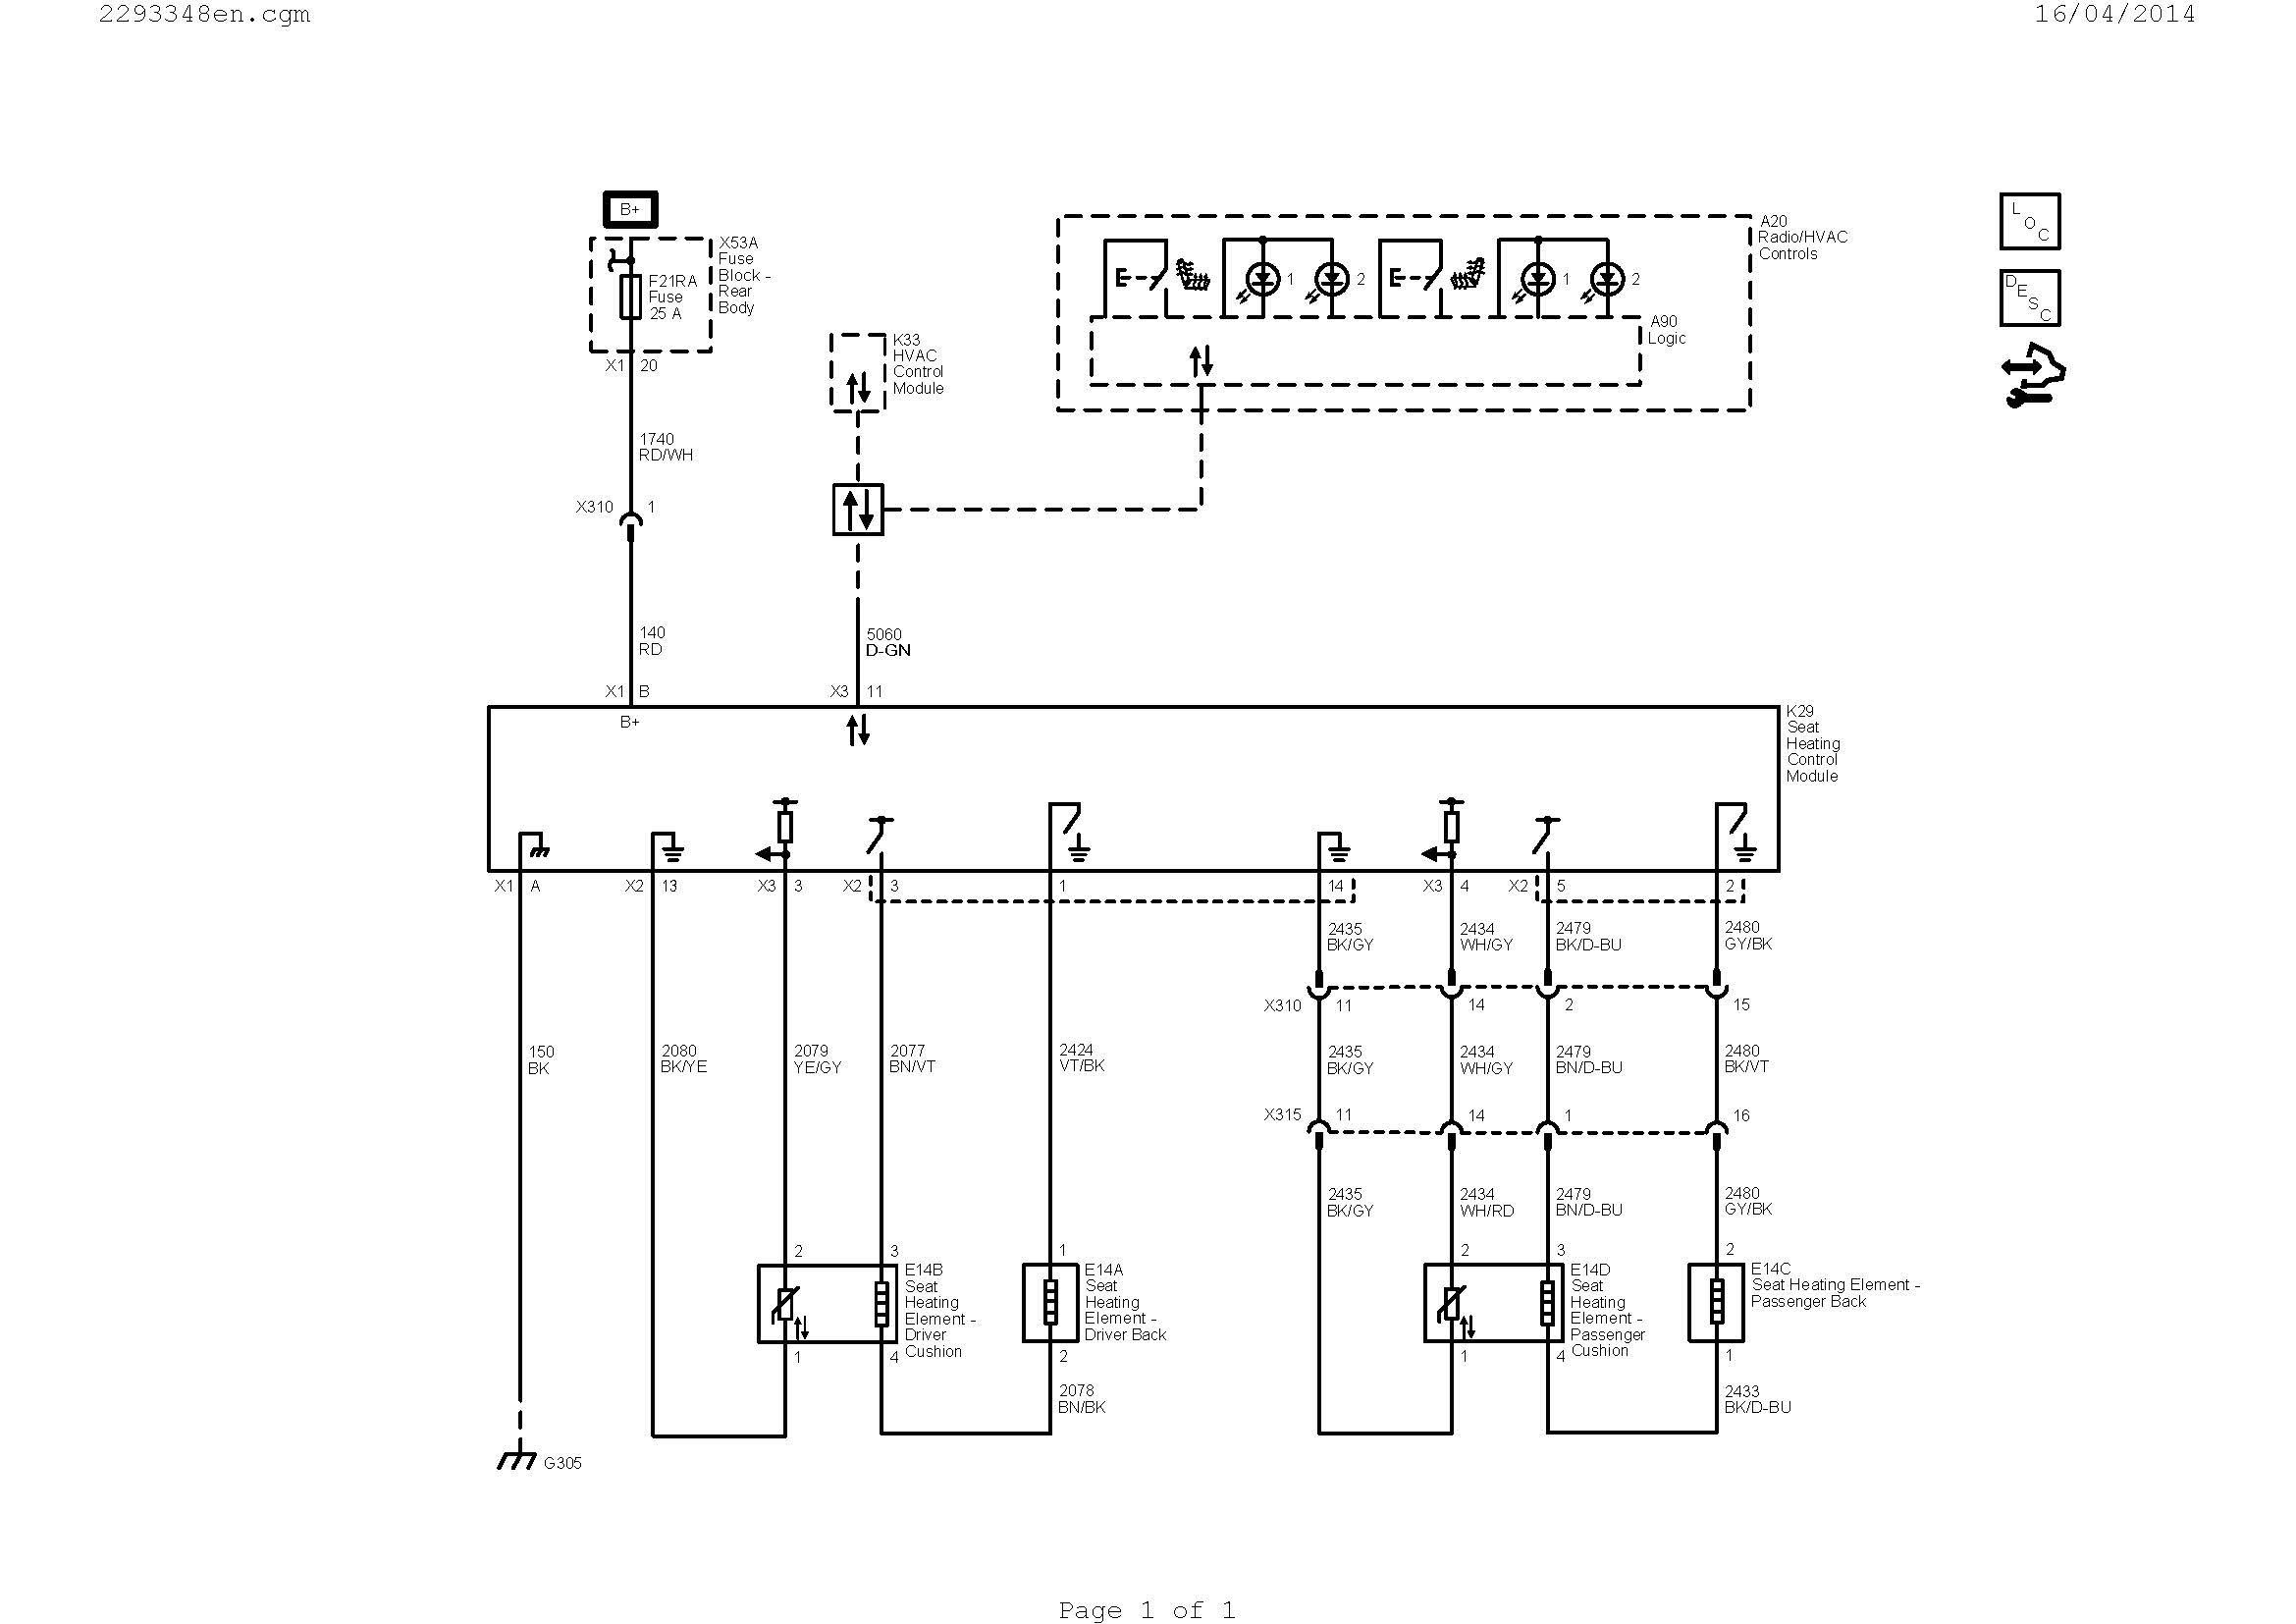 Mazda 6 Wiring Diagram New Mechanical Engineering Diagrams Hvac Diagram Best Hvac Diagram 0d